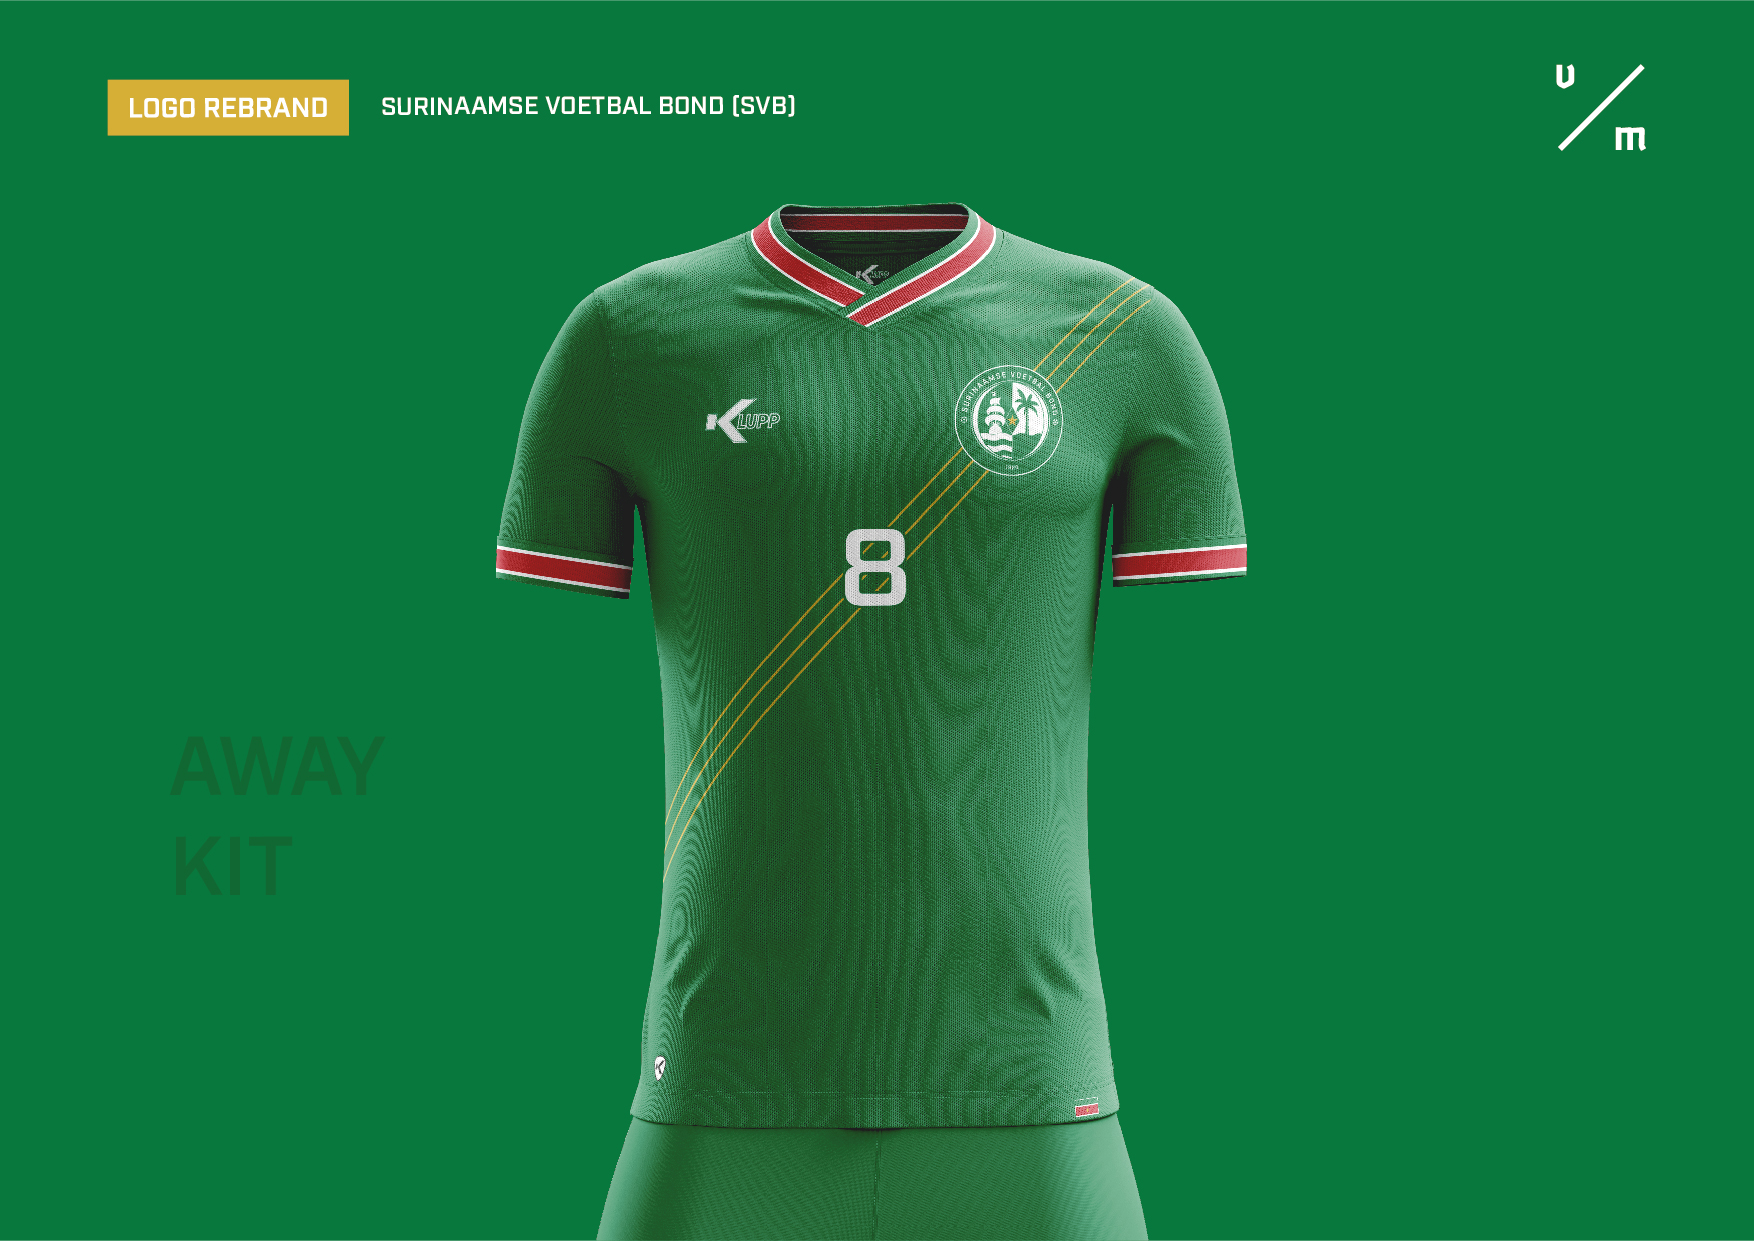 Surinaamse Voetbal Bond Away Kit Concept